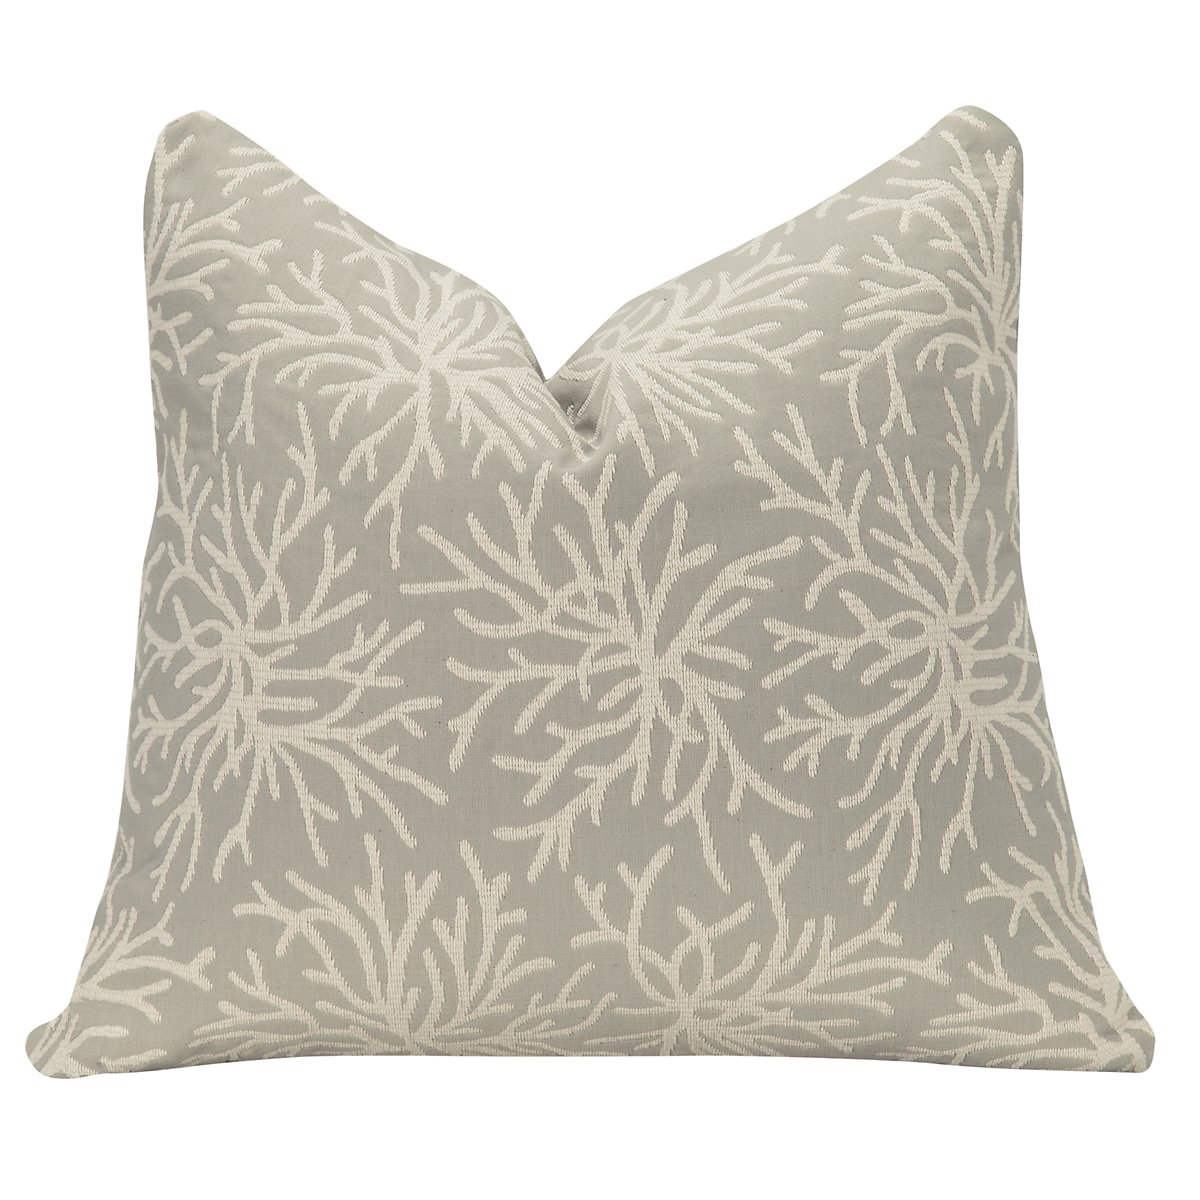 Corlis Multicolored Fabric Square Accent Pillow